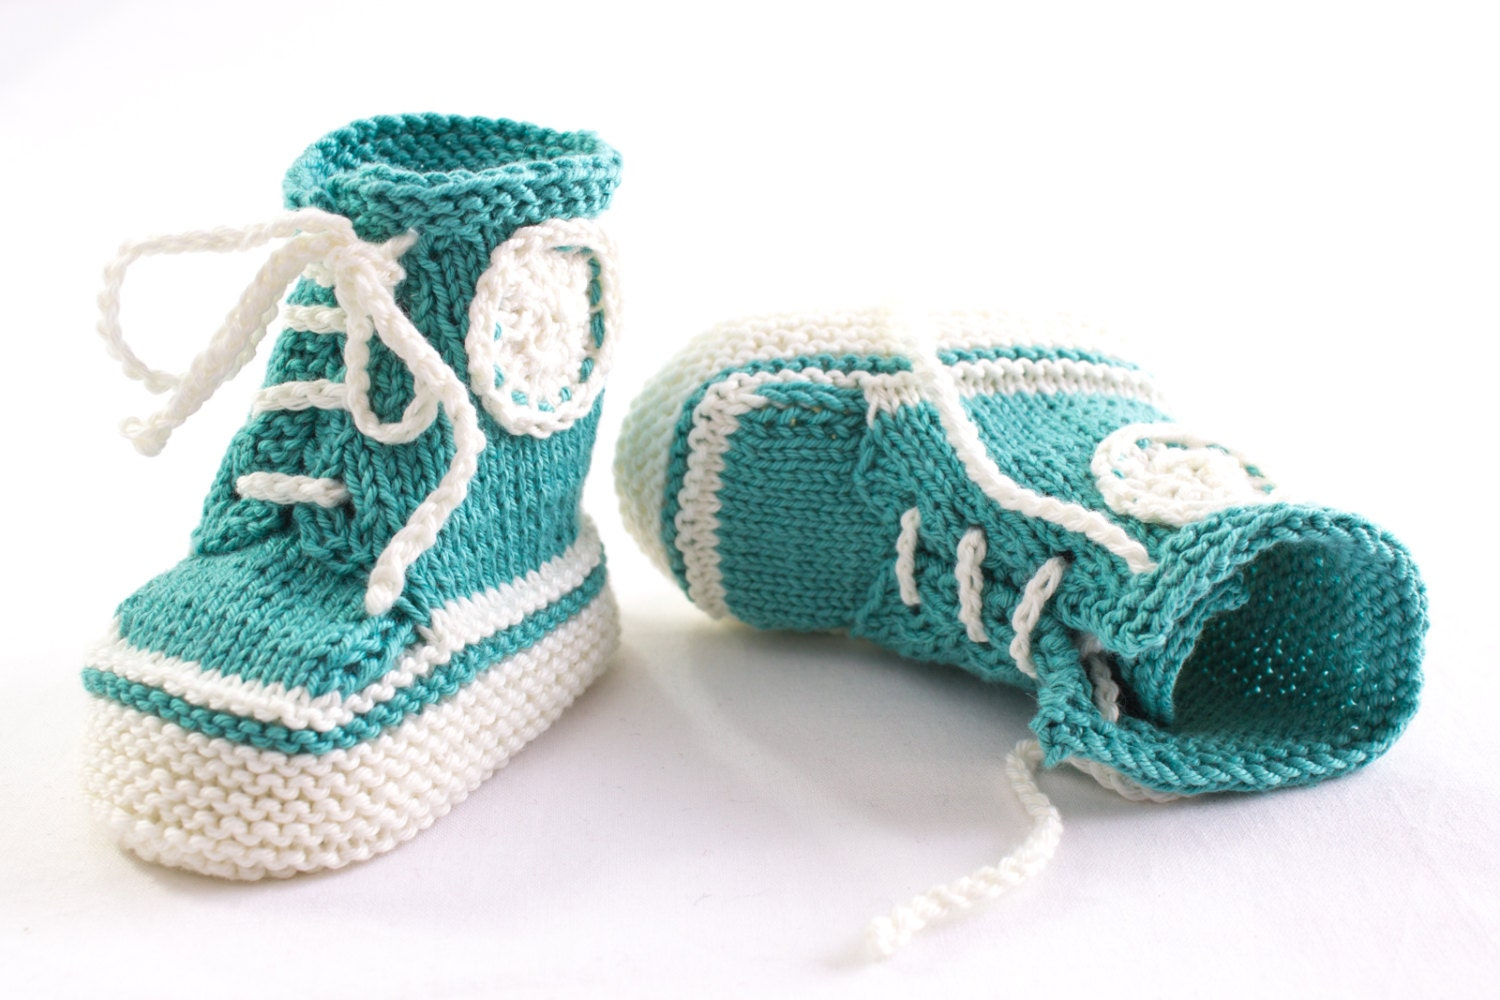 KNITTING PATTERN PDF Knit Sneaker Booties PatternTrainer